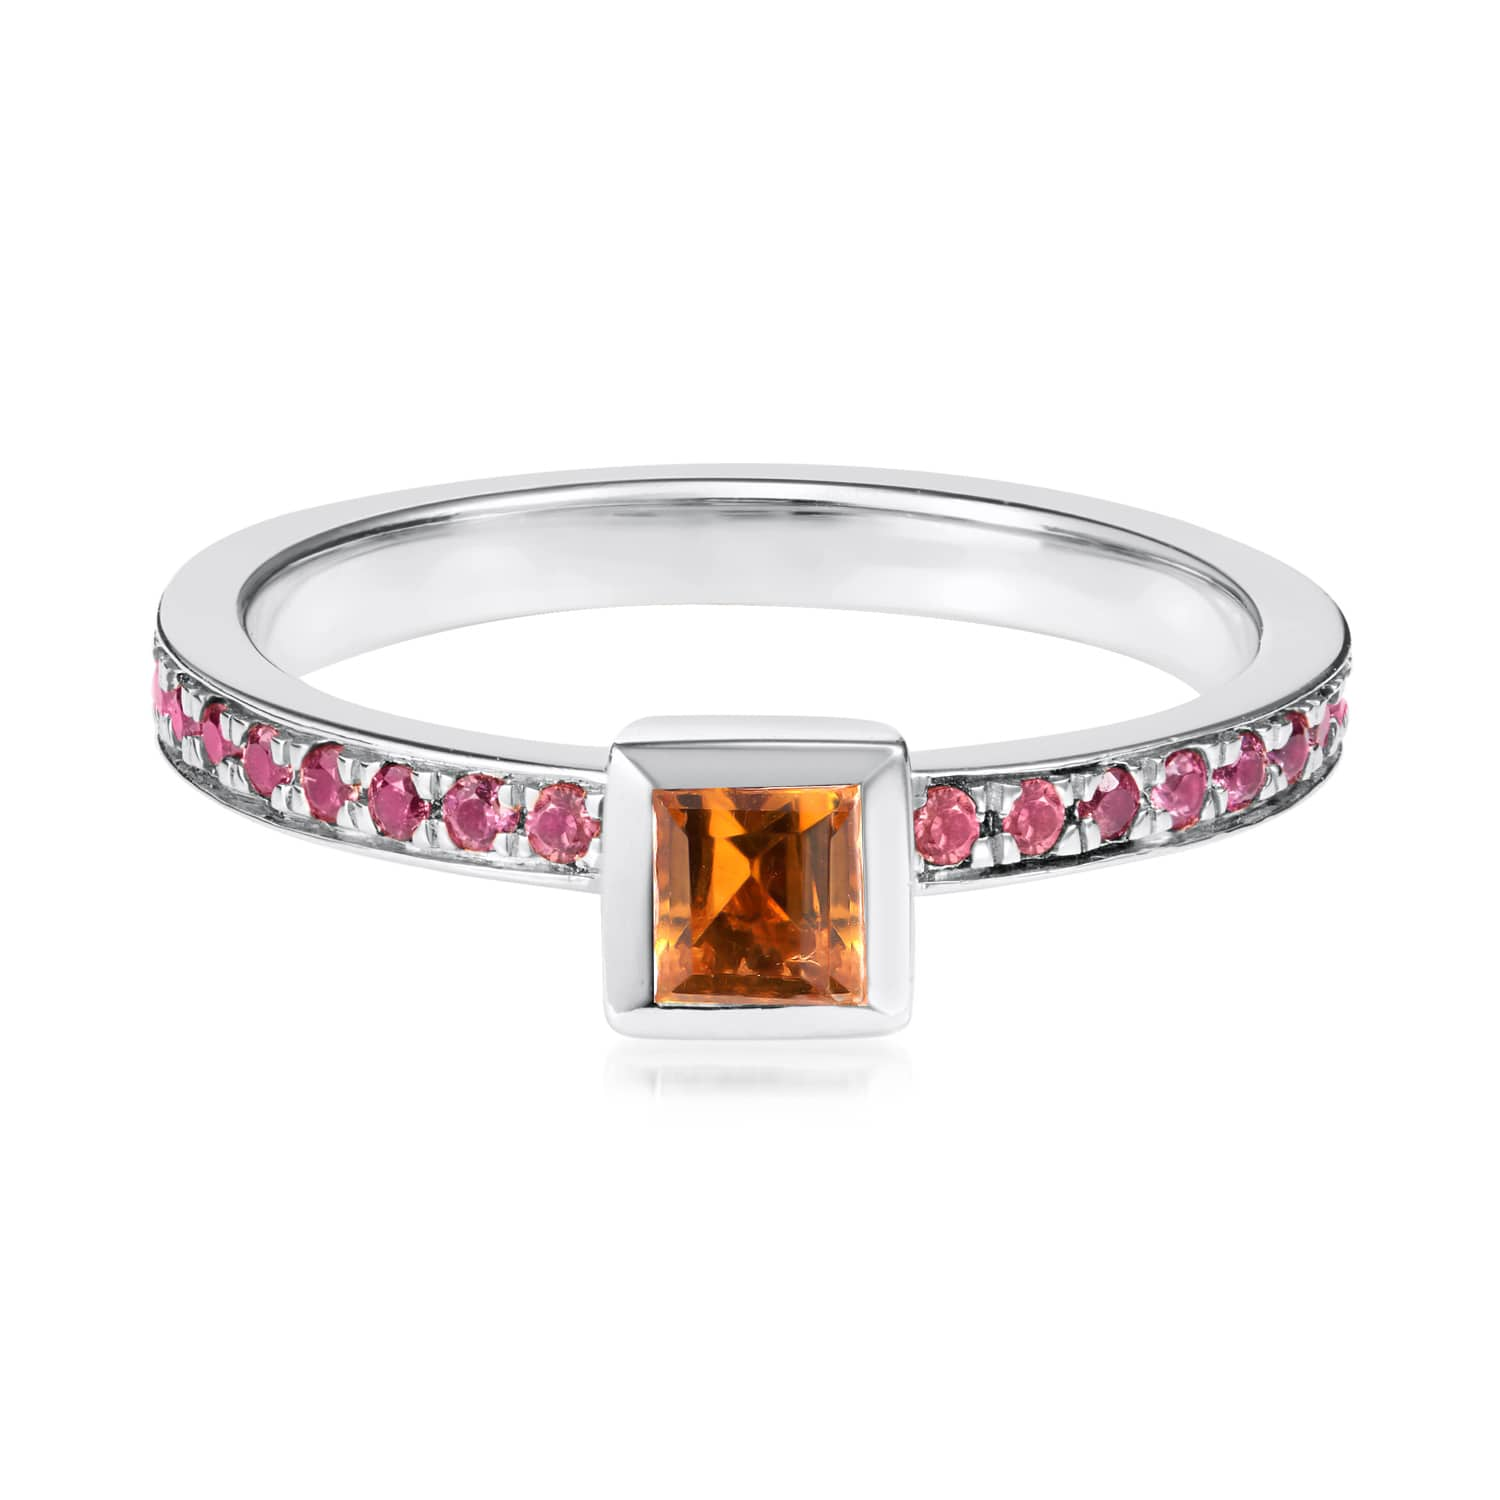 Ornate Square Citrine Ring